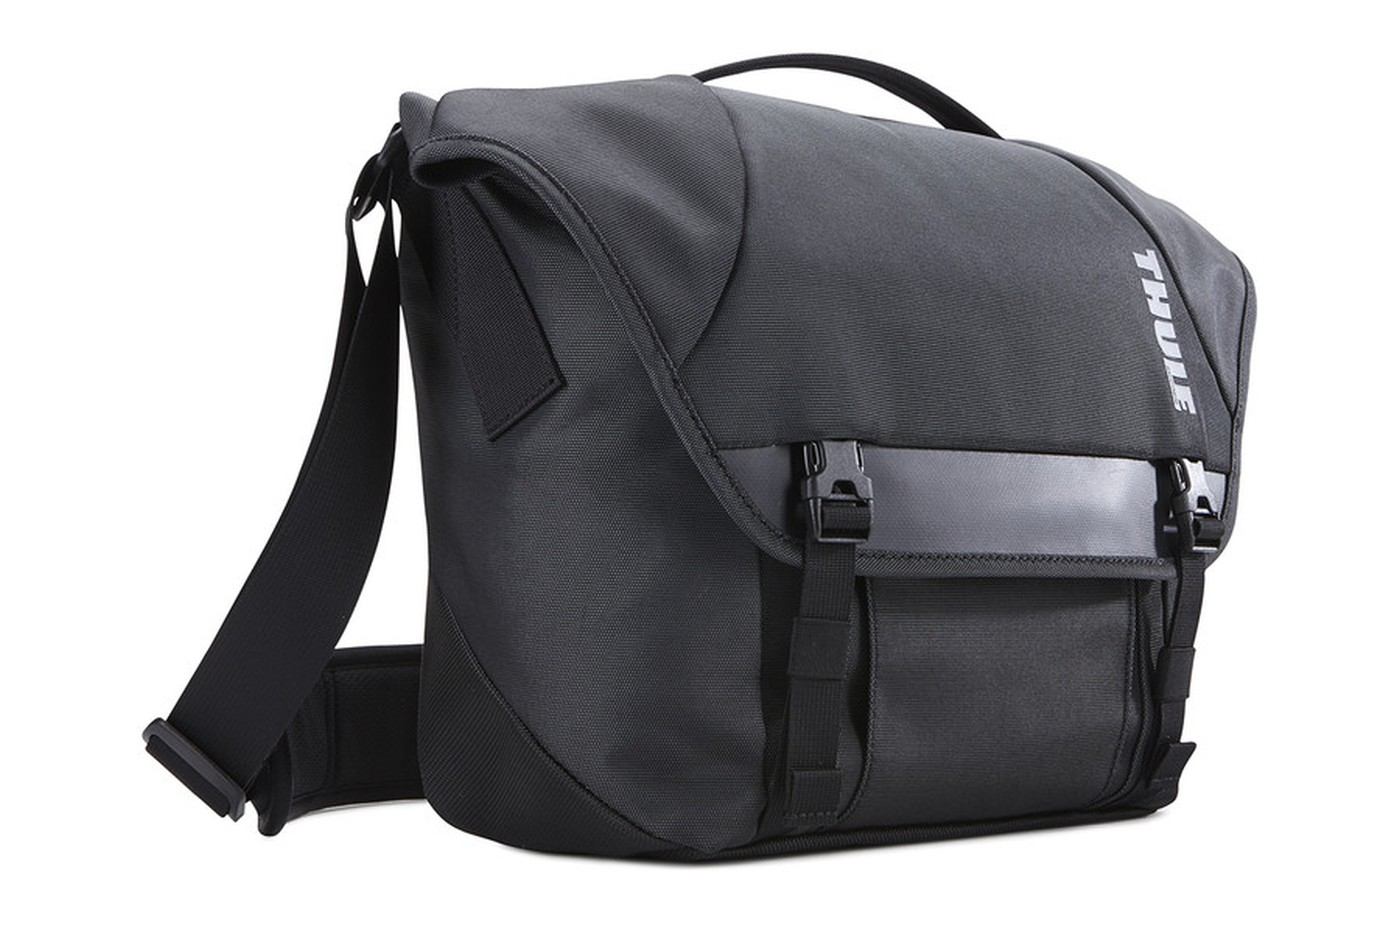 THULE Covert Small DSLR Messenger - Black - Kamerataschen